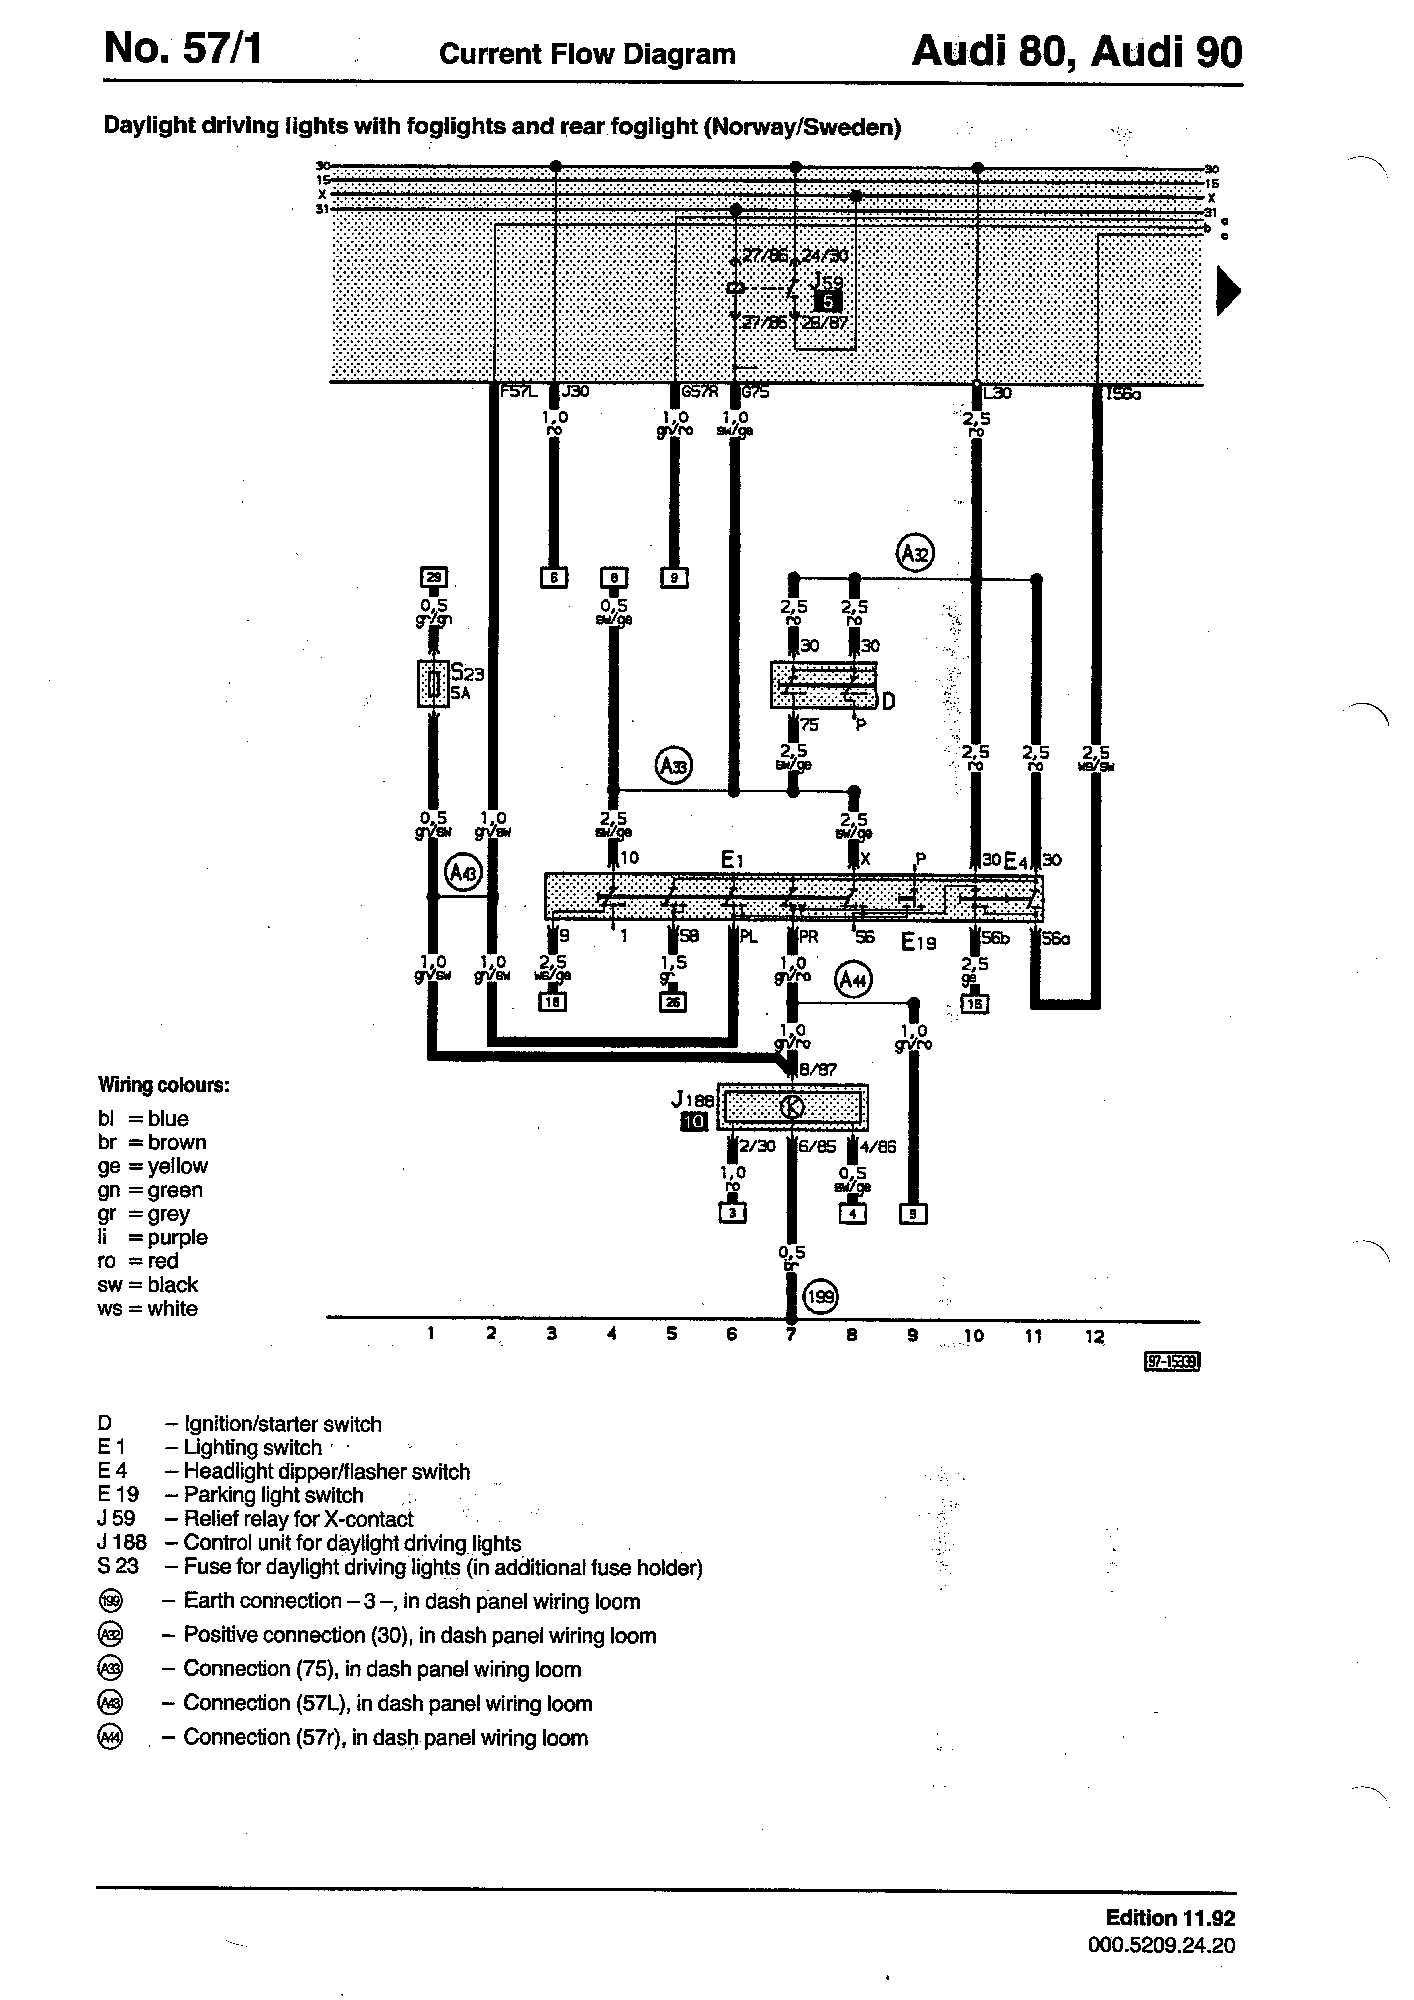 Wiring Diagrams Component Lookup Turn Light Switch Diagram Parking E19